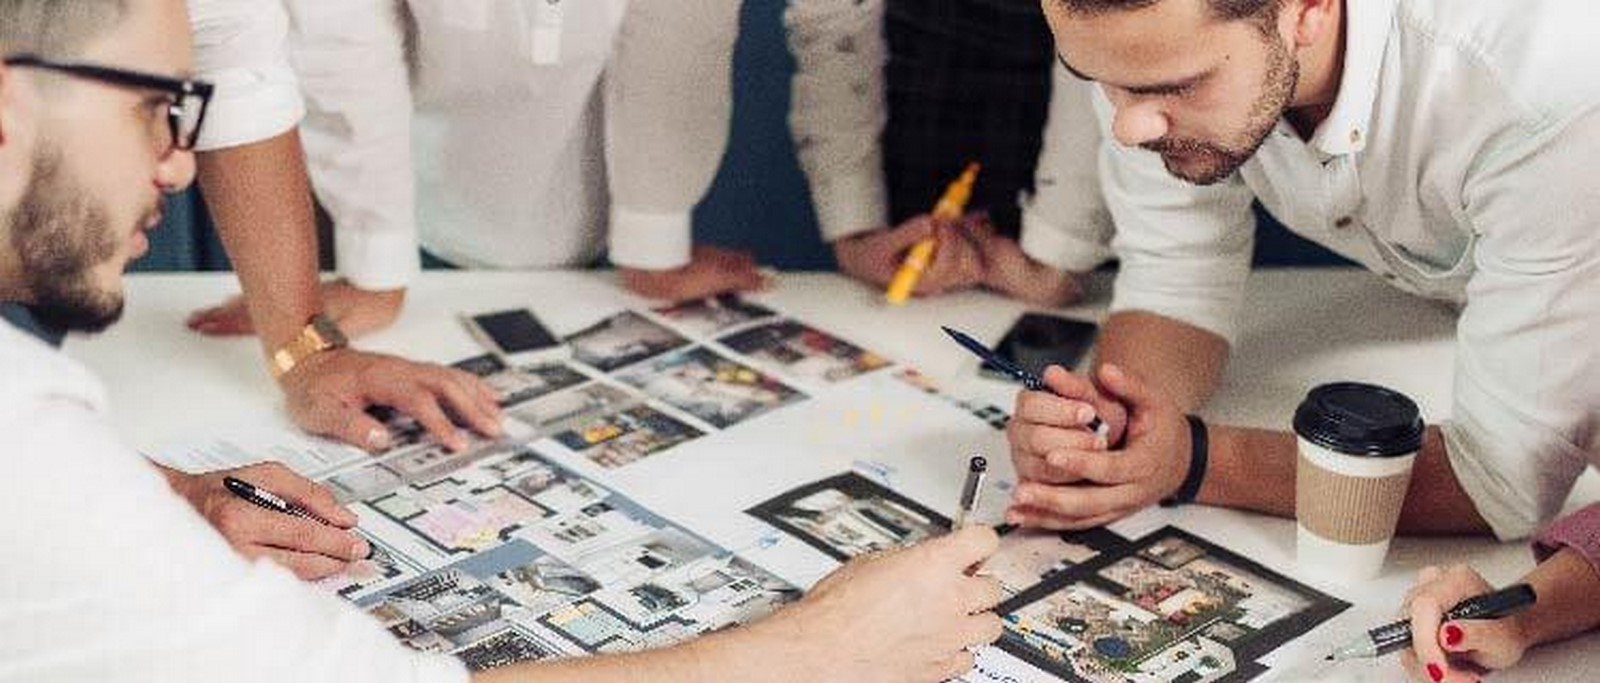 10 Mistakes You Should Avoid in Architectural Internship - Sheet1